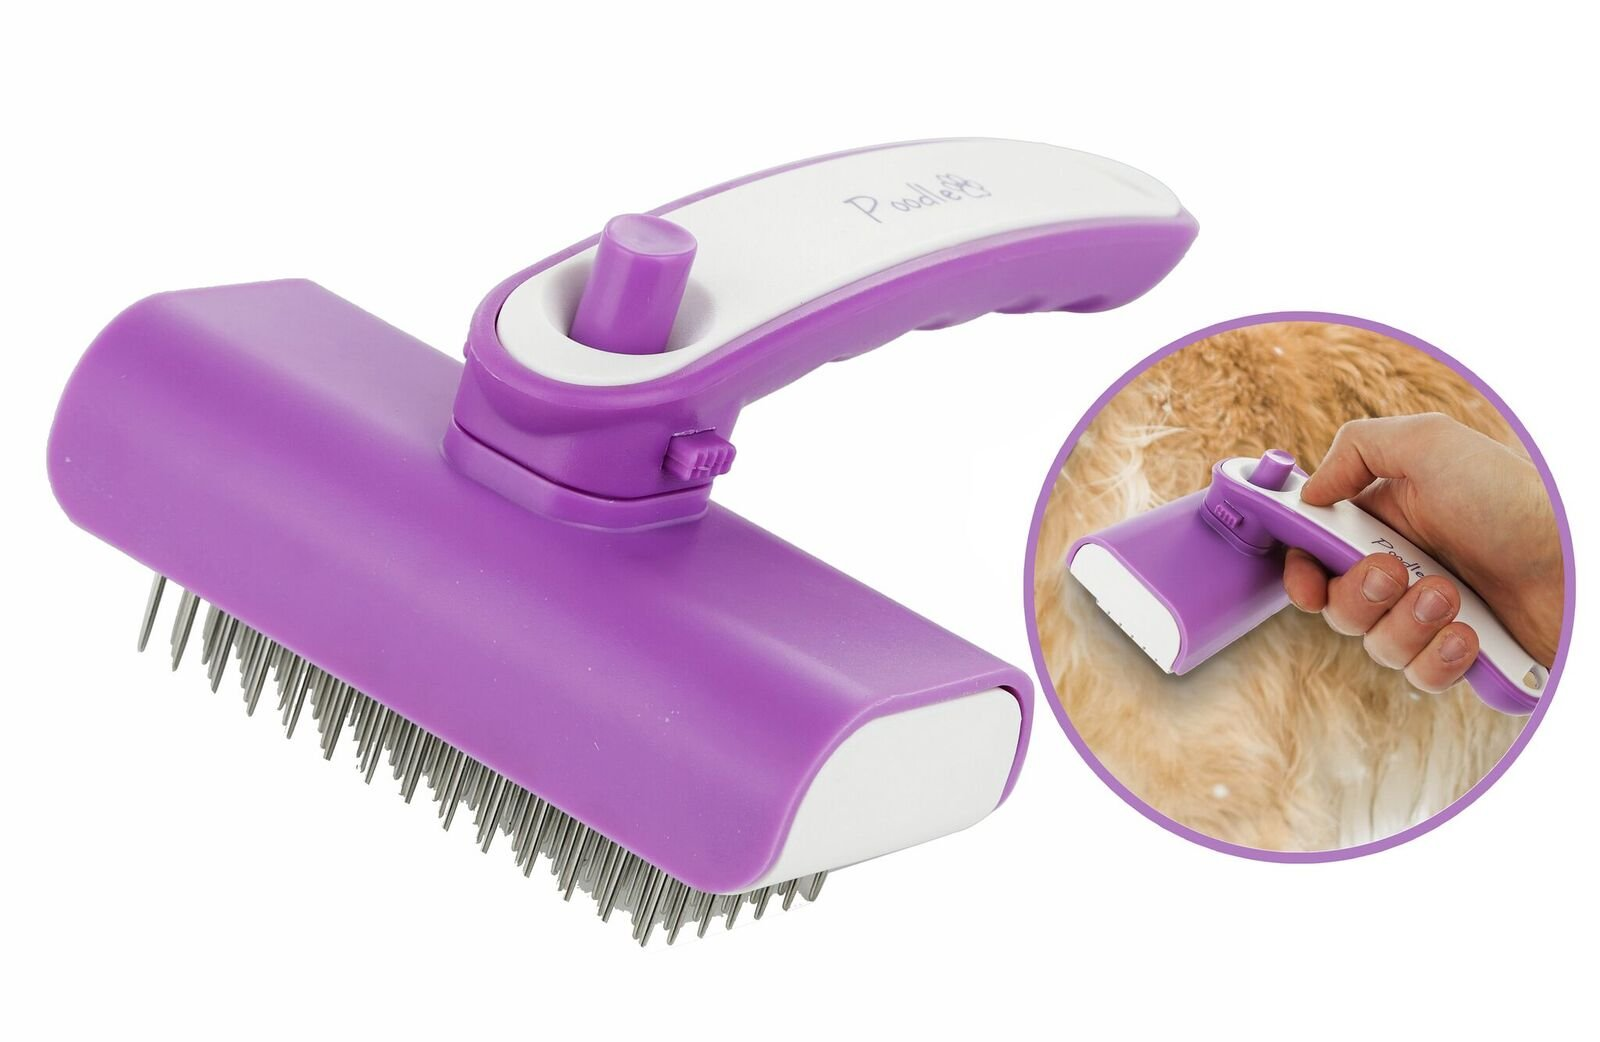 Poodle Pet Self-Cleaning Retractable Steel Pin Grooming Brush for Dogs, Cats, Horses, Rabbits & More, Durable 6.5'' x 5'' Easy Clean Shedding Groom Comb with Retracting Bristle Cleaner